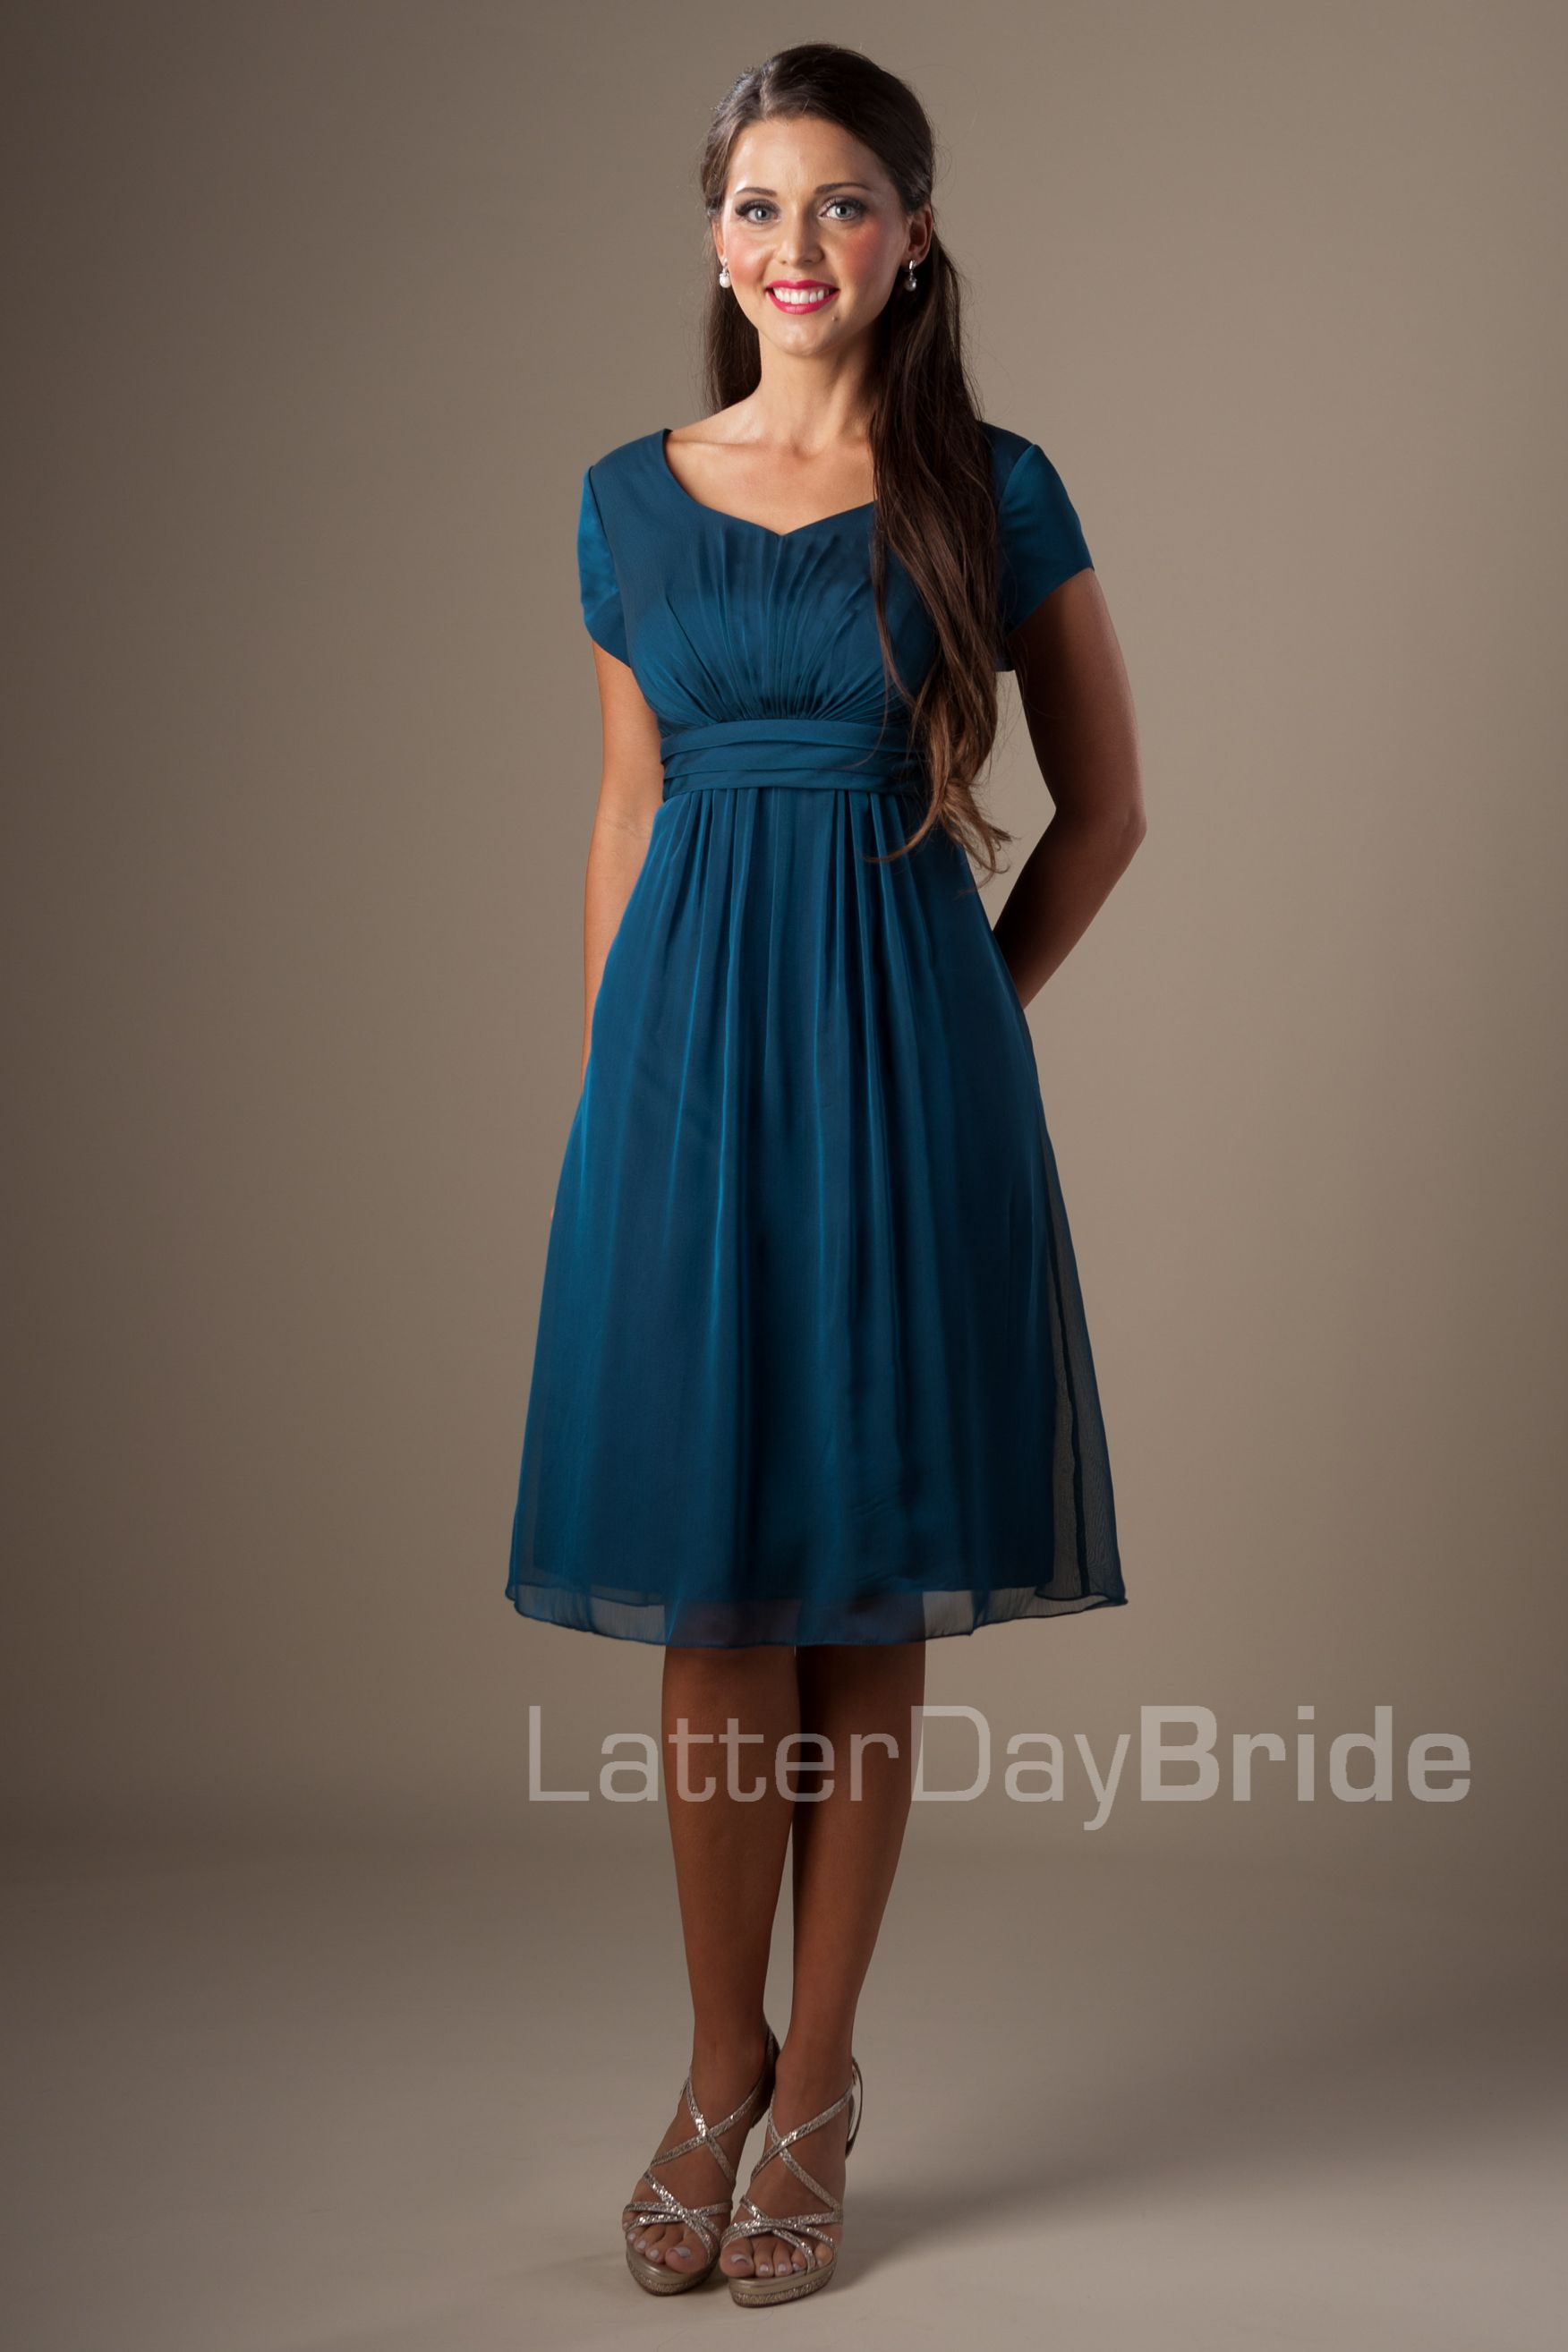 Modest Bridesmaid Dresses : Briana... need to compare colors ...